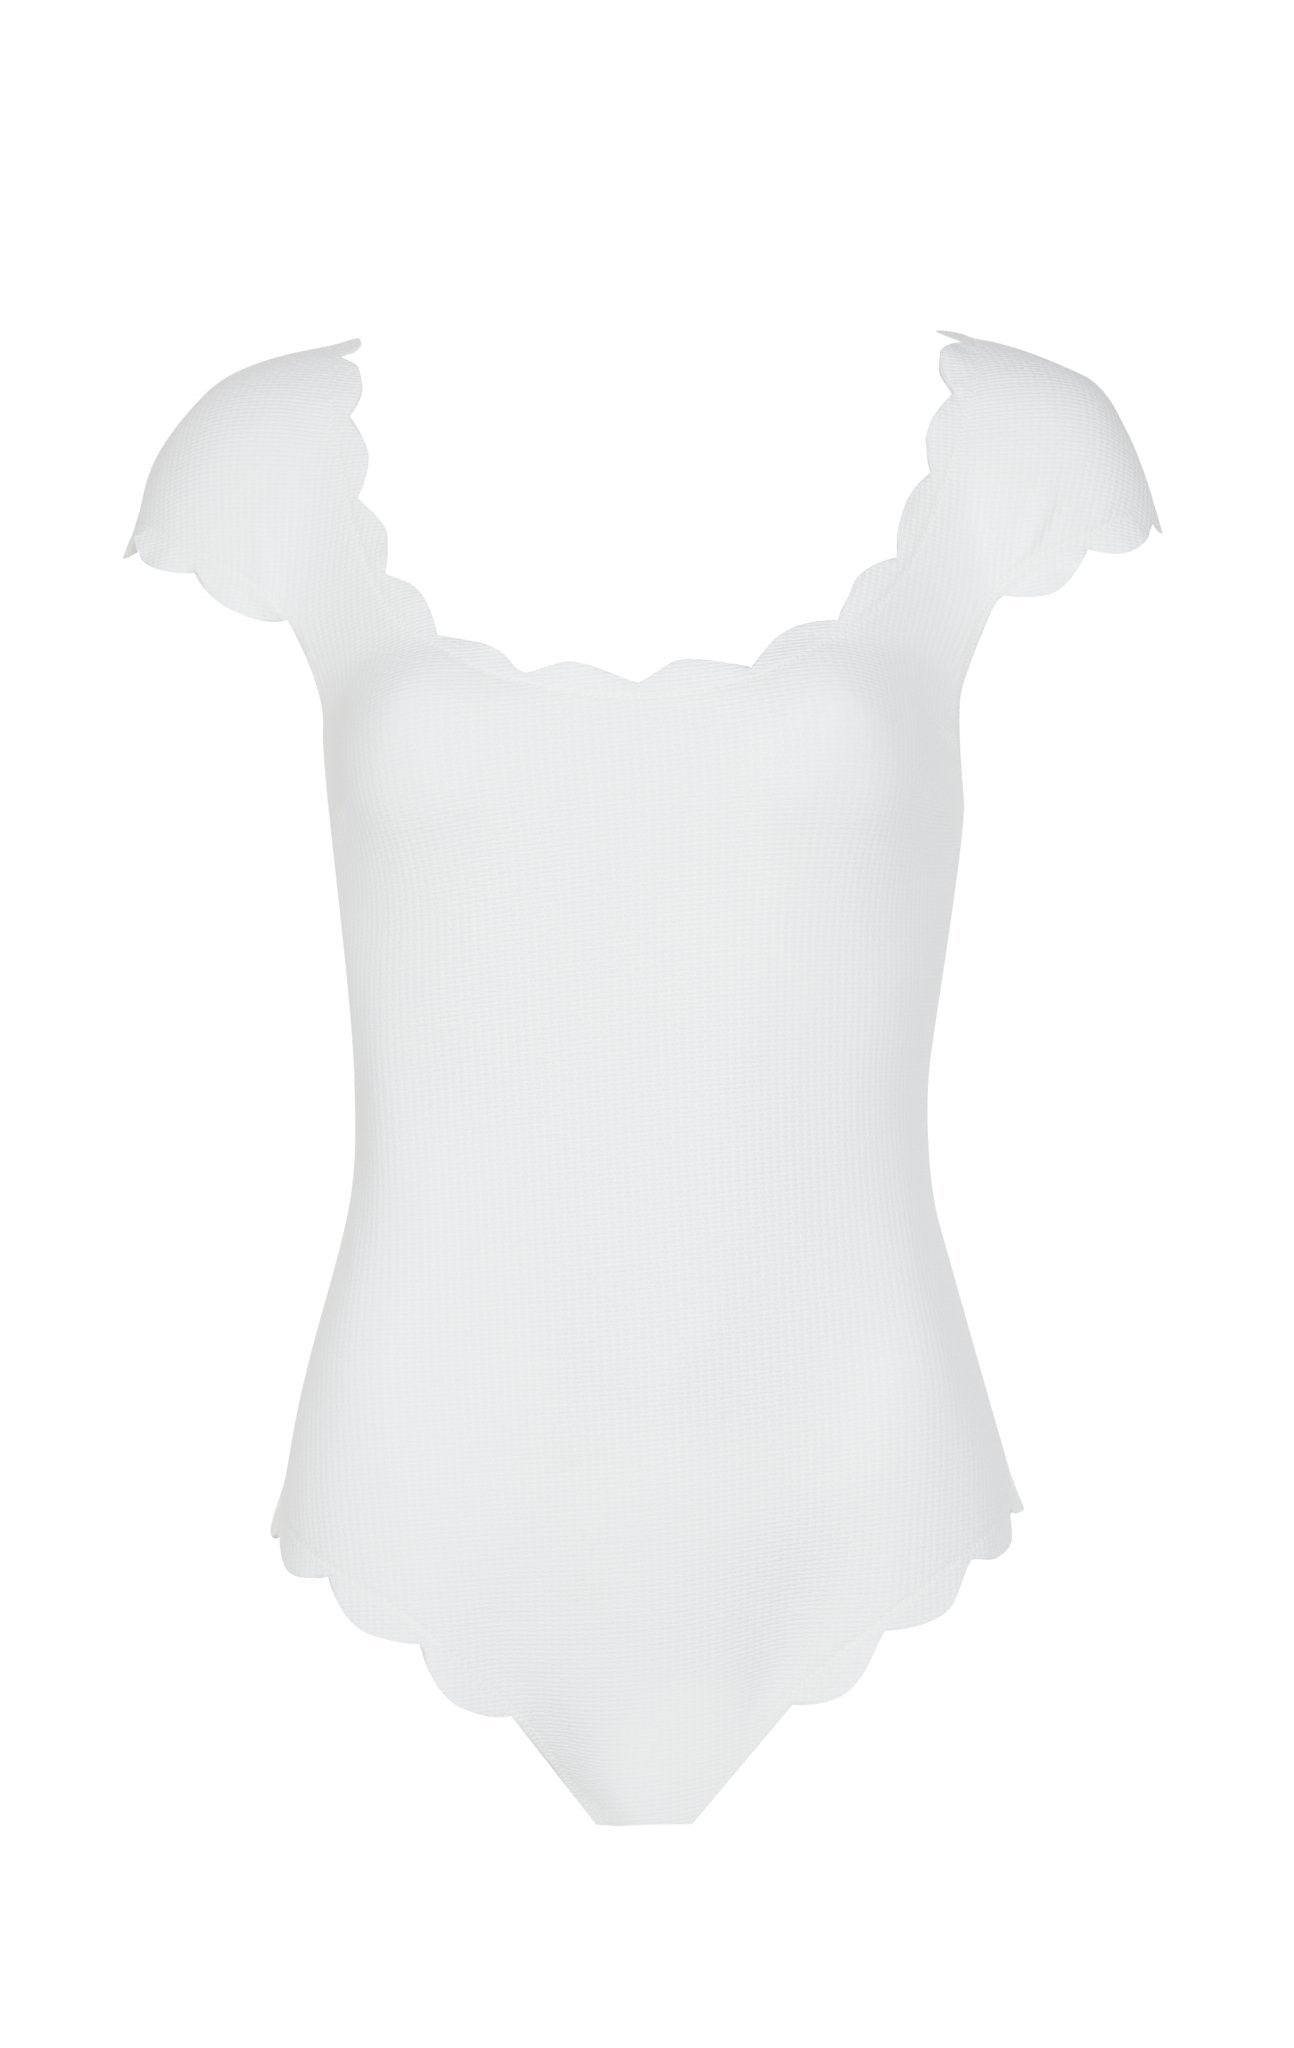 SWIMCLEAN Sustainable Scalloped Mexico Maillot in Coconut